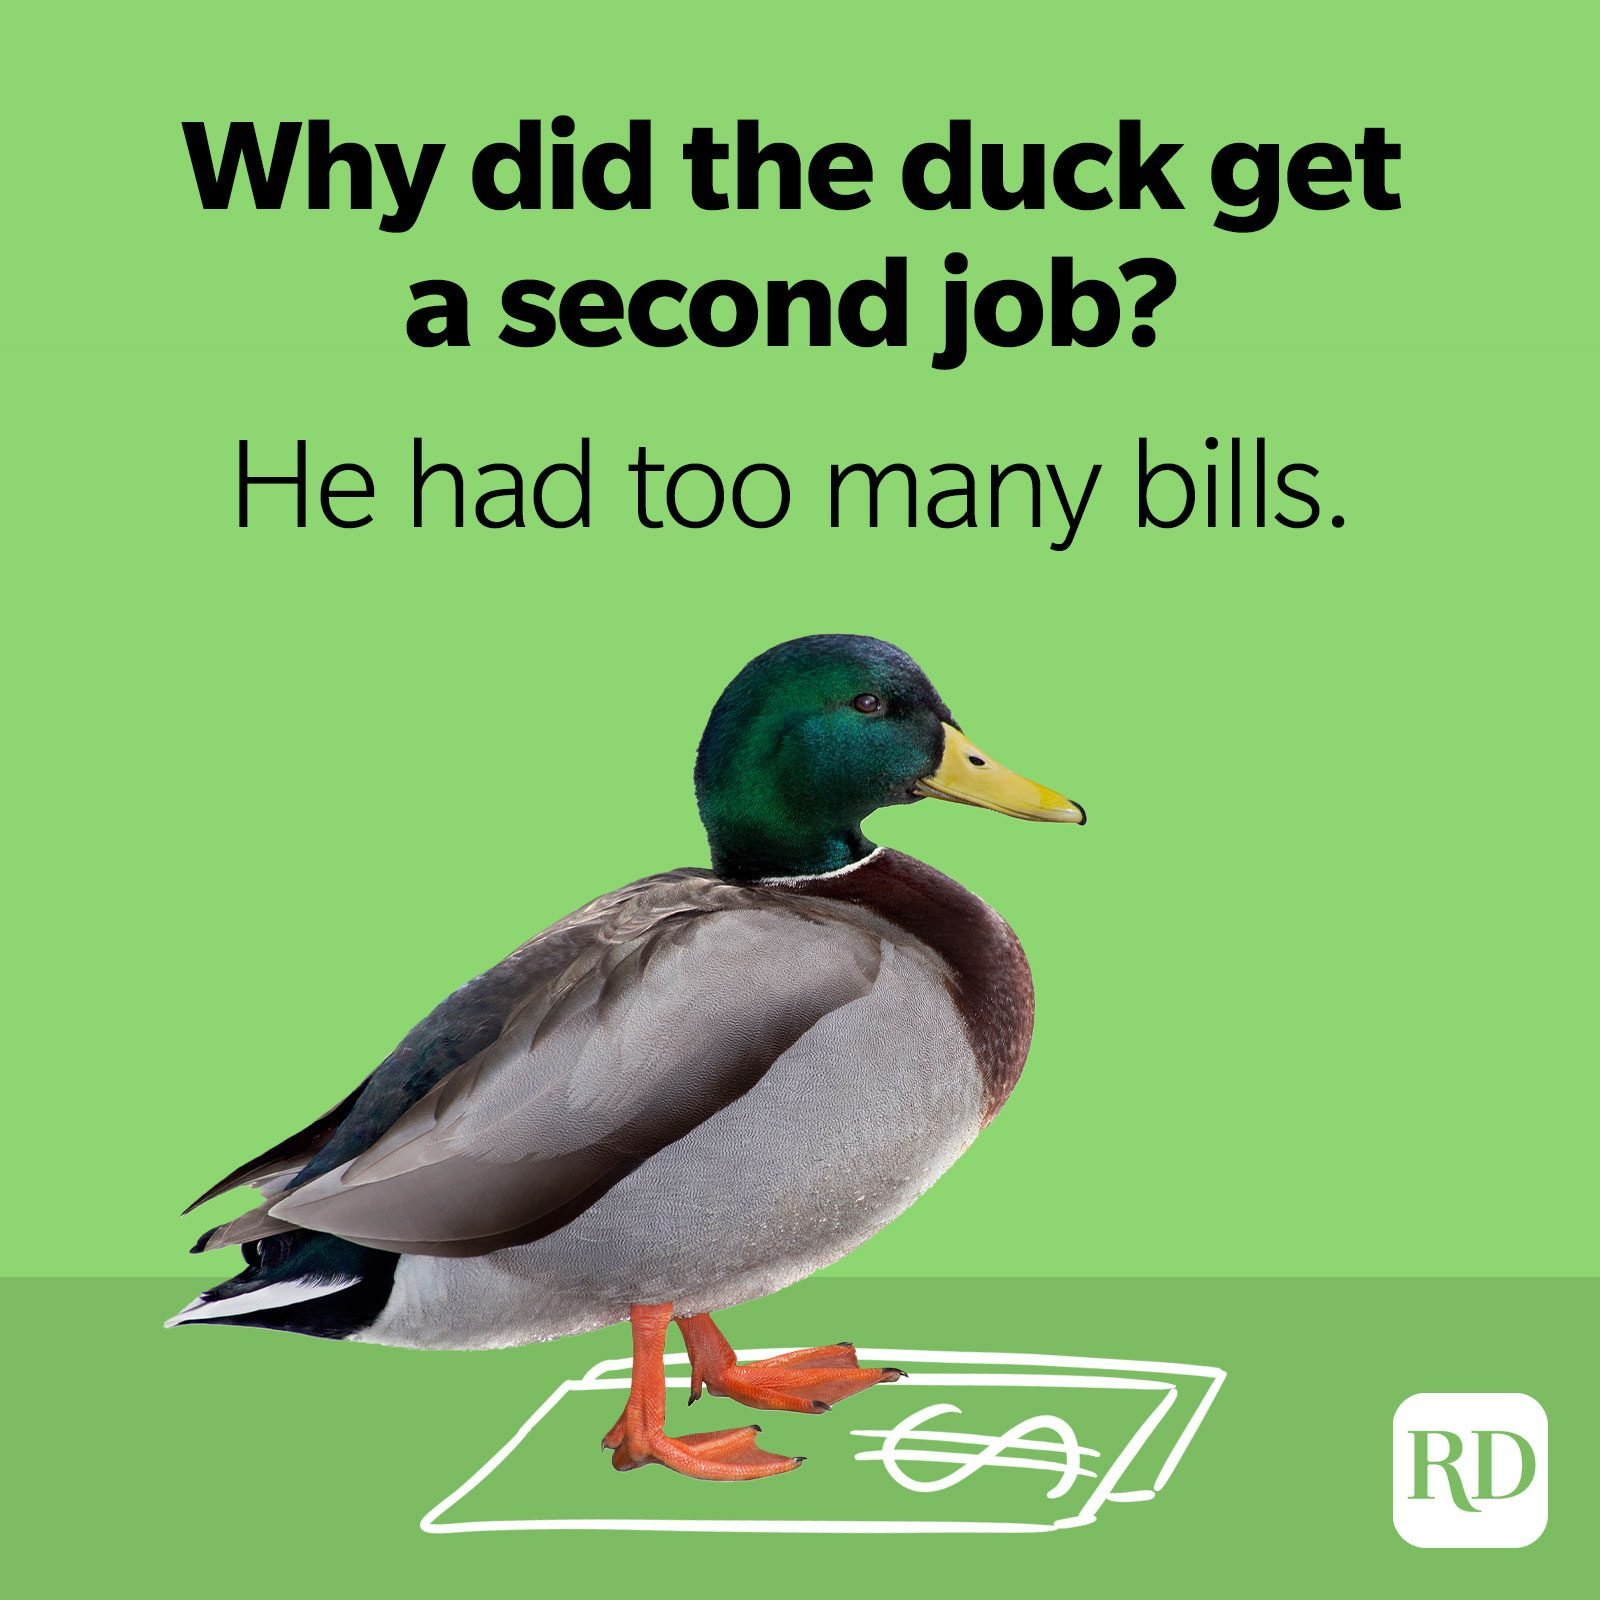 43. Why did the duck get a second job? He had too many bills.